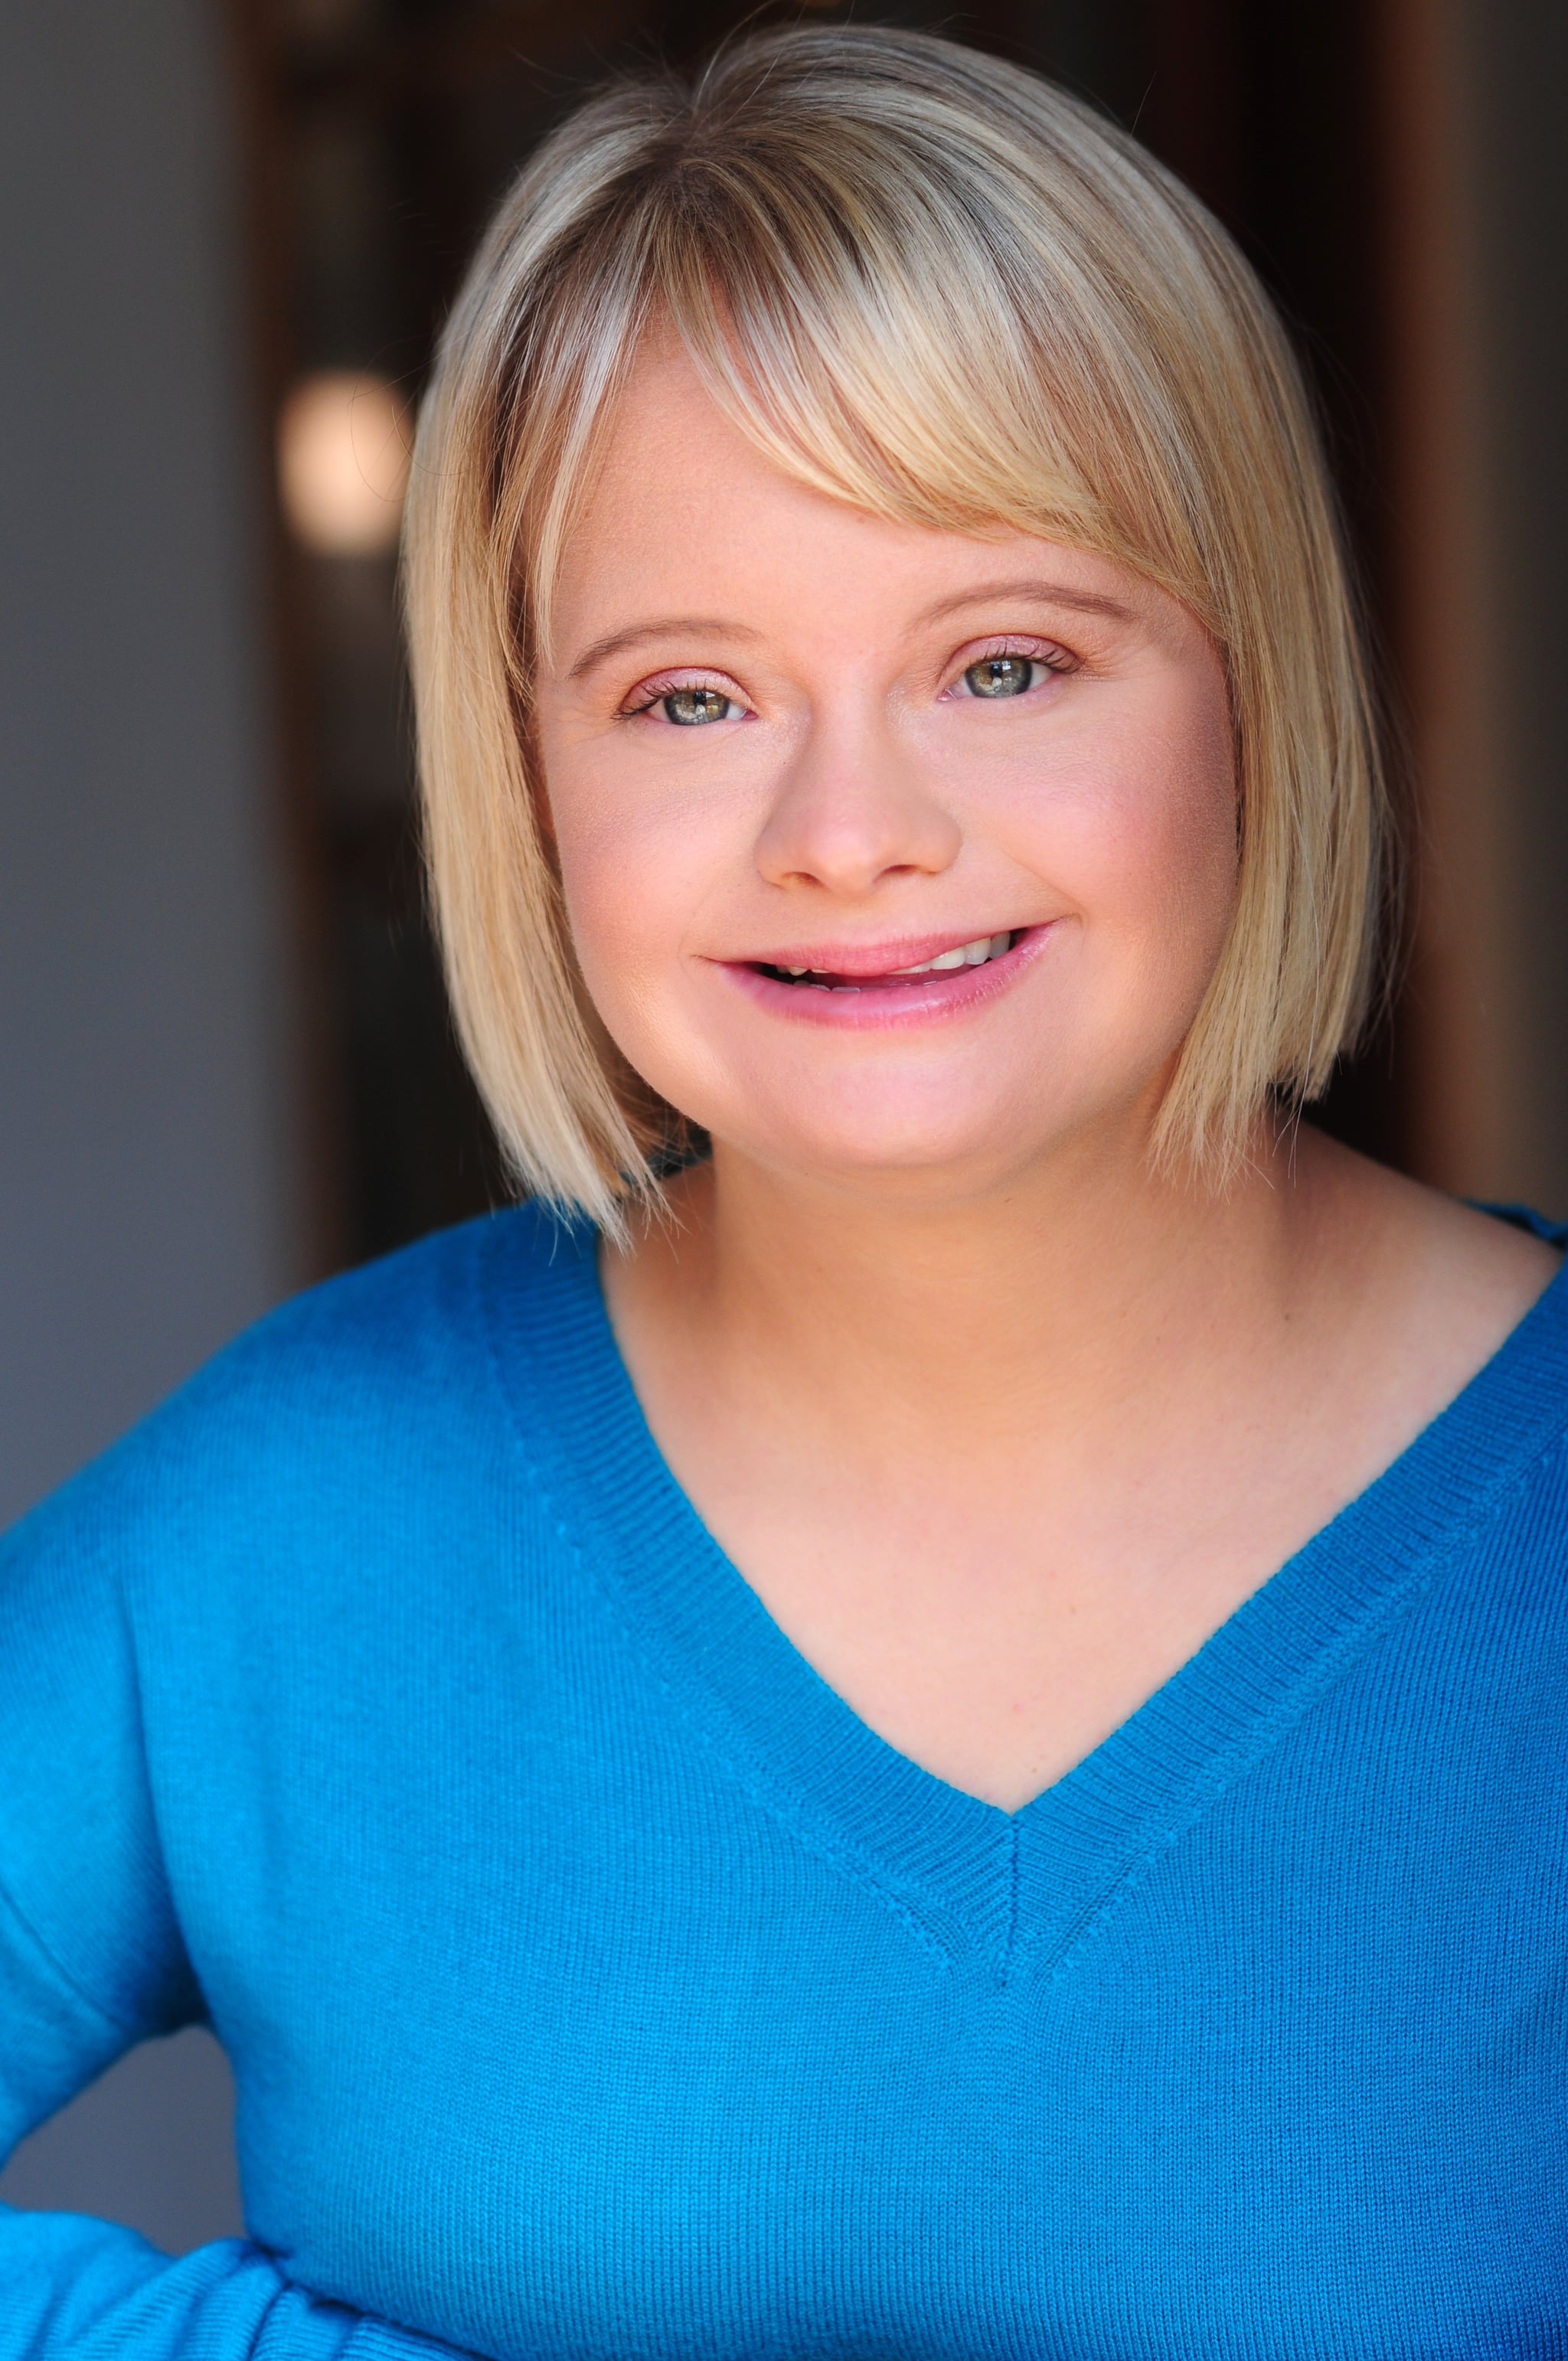 braless Lauren Potter naked photo 2017